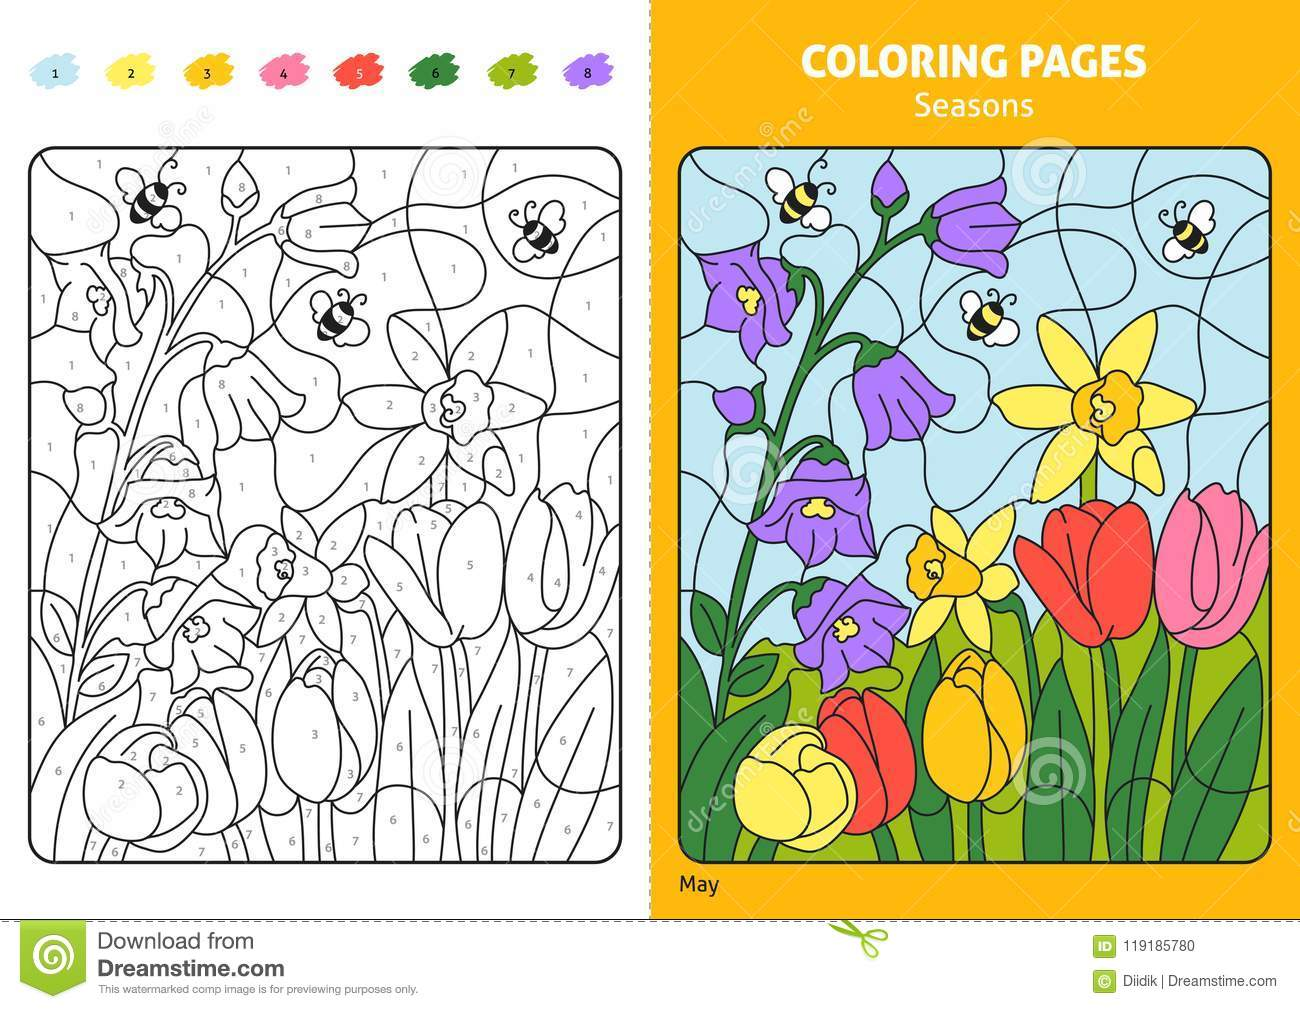 Seasons Coloring Page For Kids May Month Stock Vector